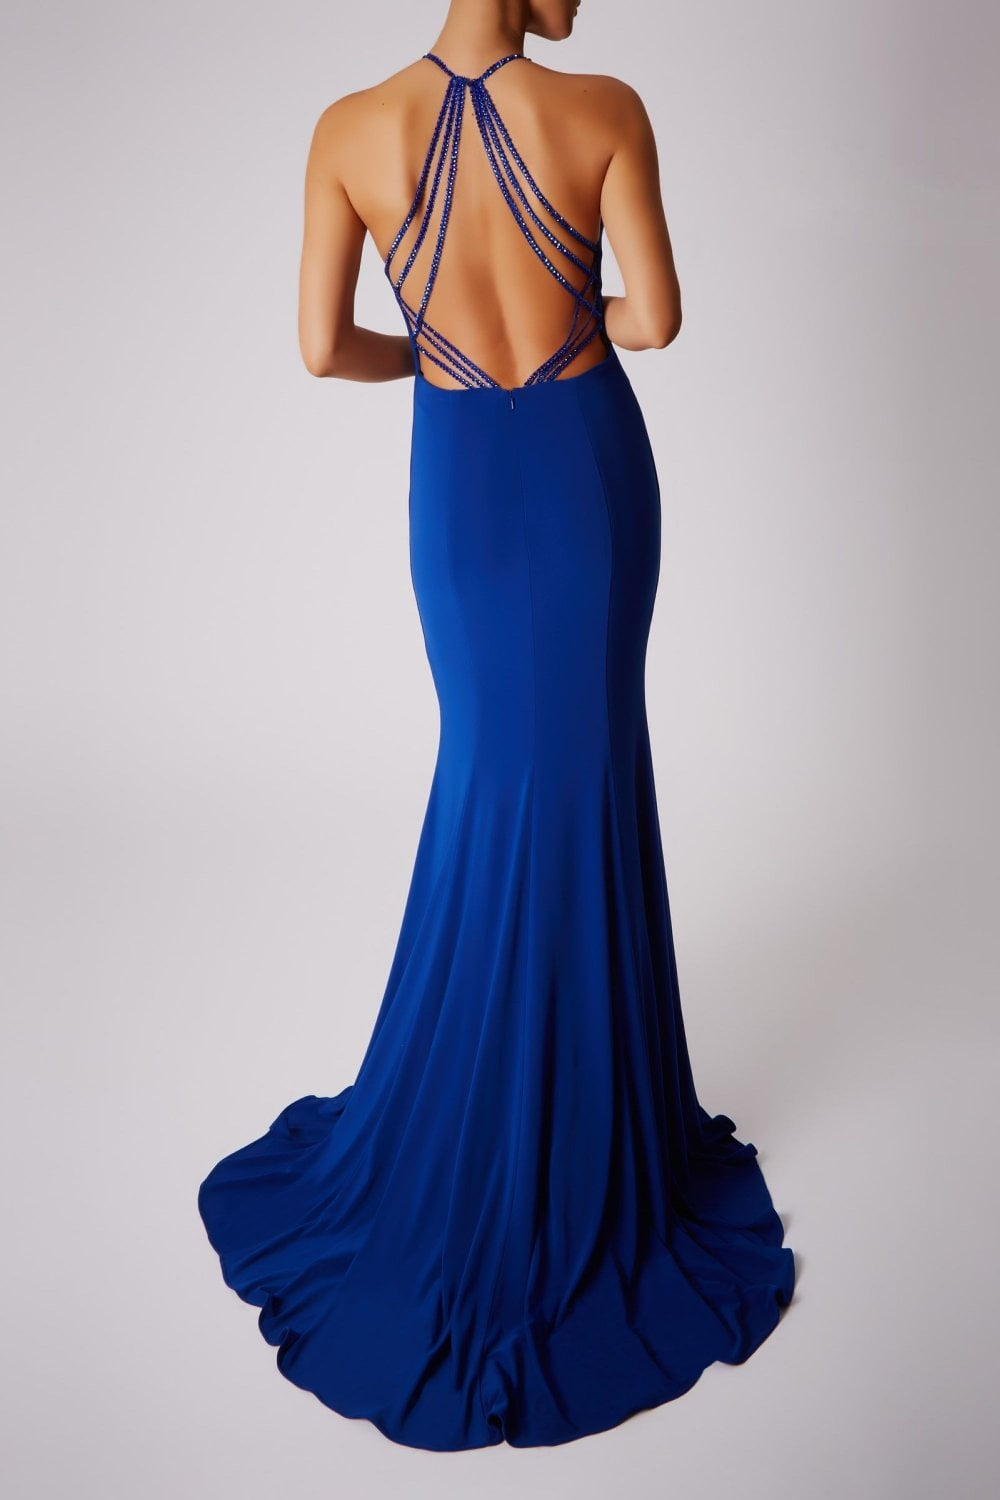 Mascara Mc181360g Sparkle Strap Dress With High Neck In Royal Blue